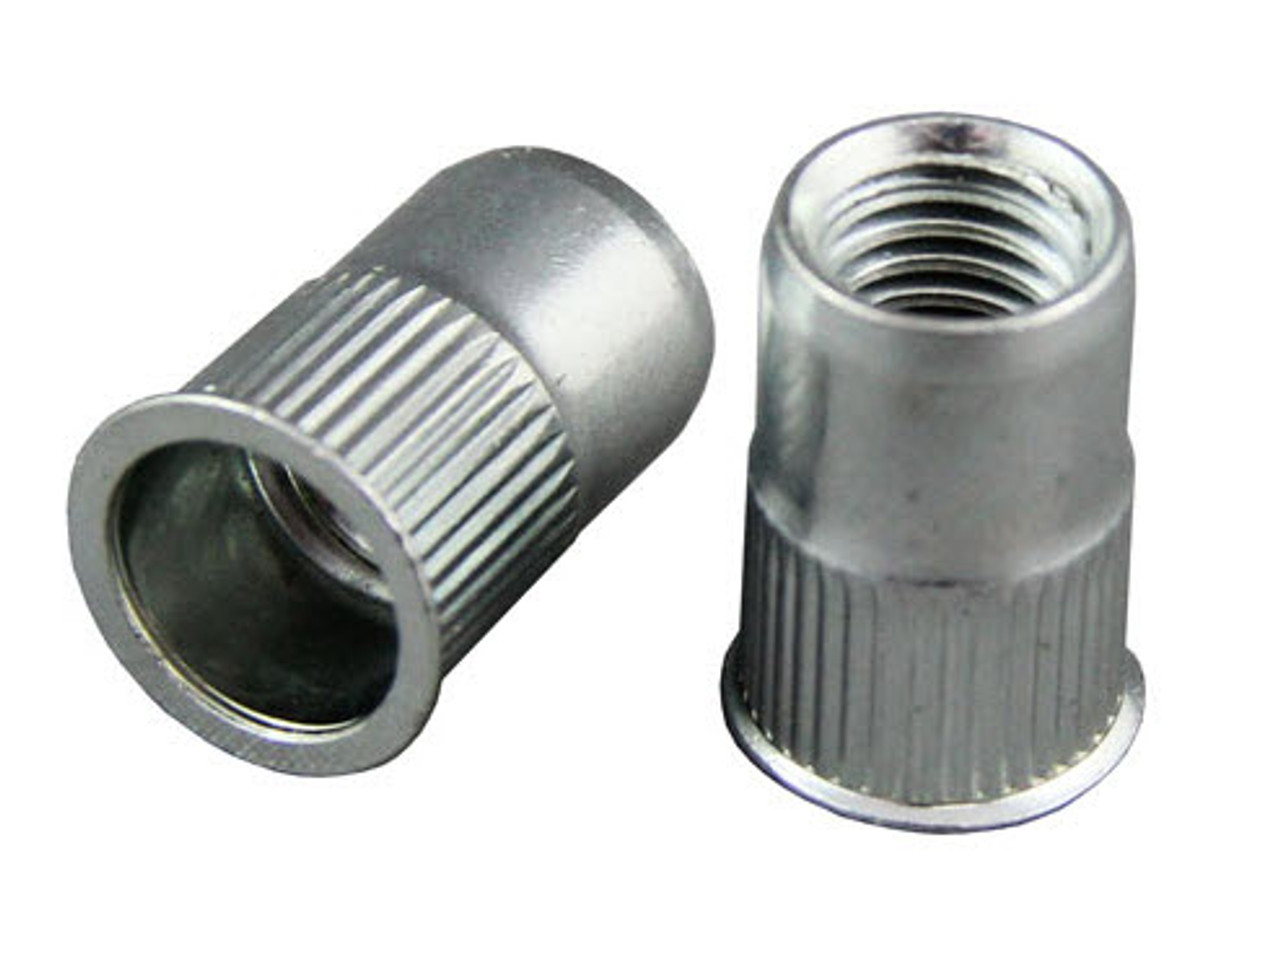 Countersunk Nutserts (Rivet Nut) Low Profile Head - Round Splined Body Pack of 100